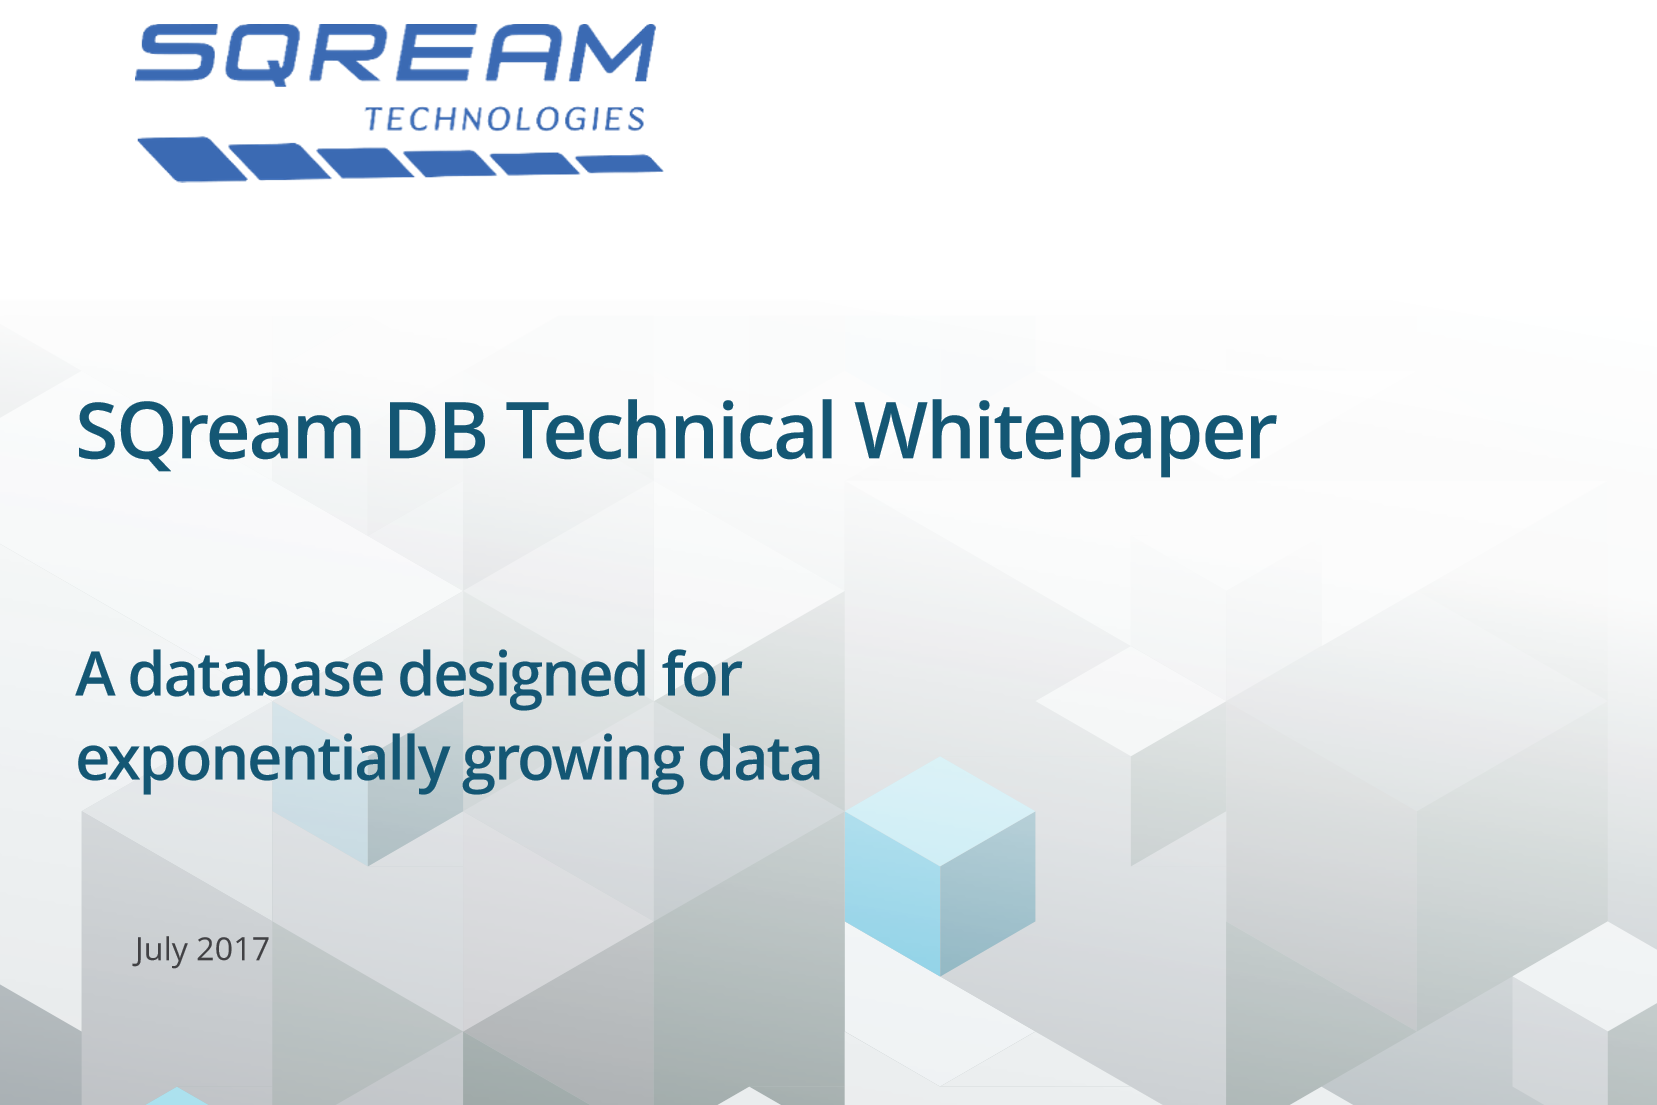 sqream db tech whitepaper.png